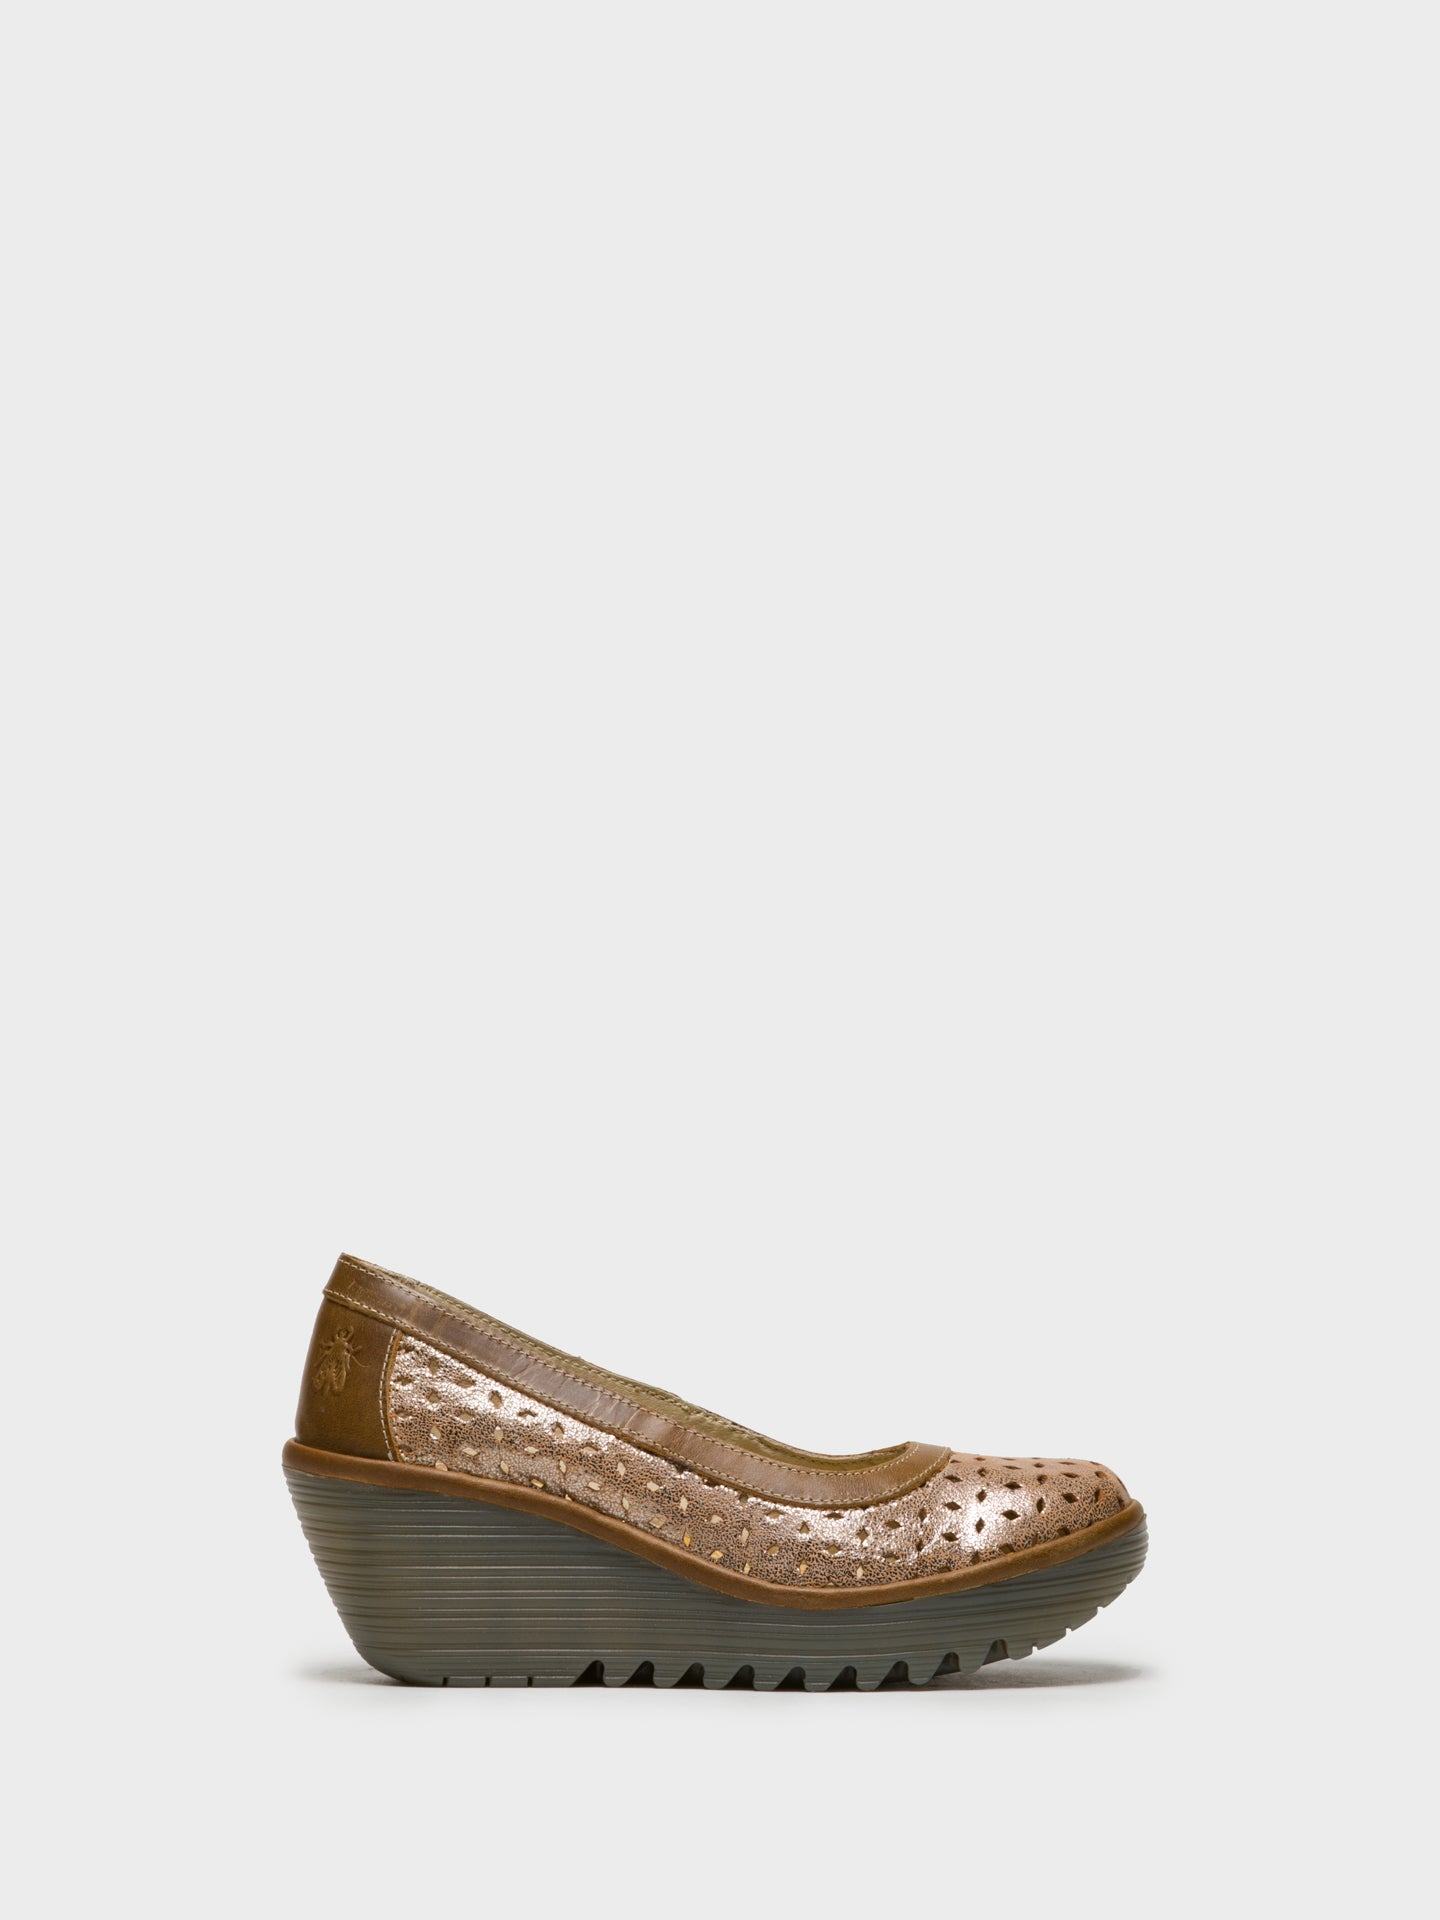 Fly London Peru Wedge Shoes